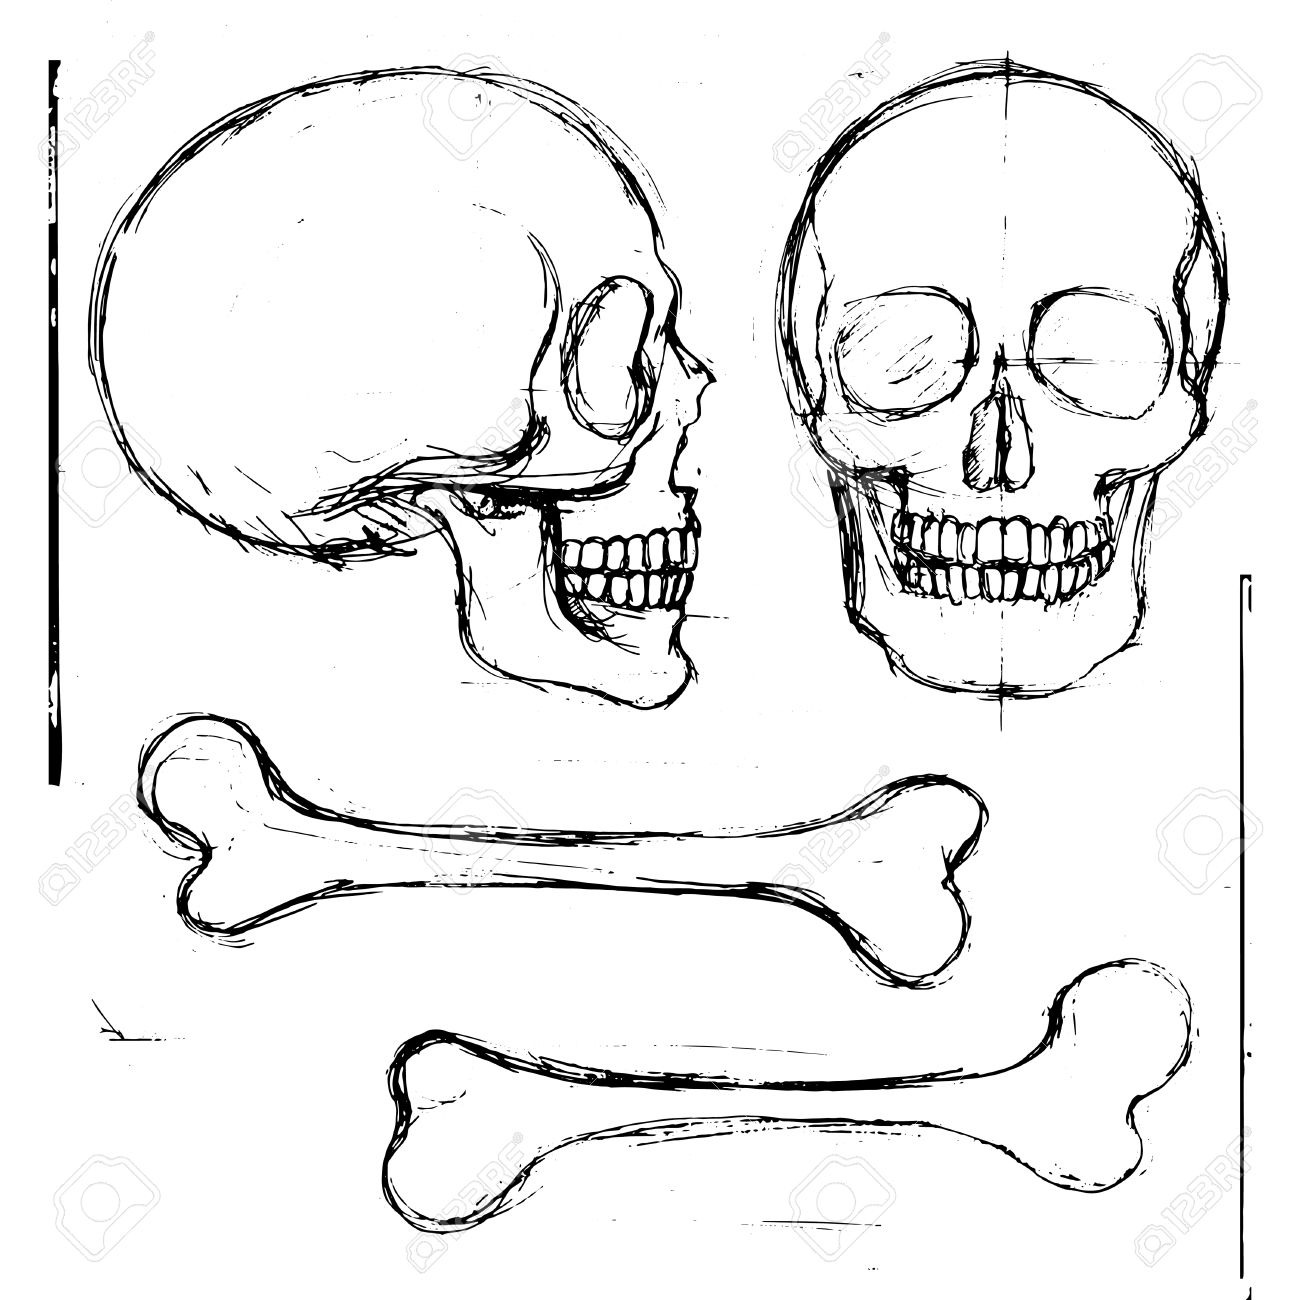 1300x1300 Isolated Pencil Hand Drawn Human Skull And Tibia Bones, Front